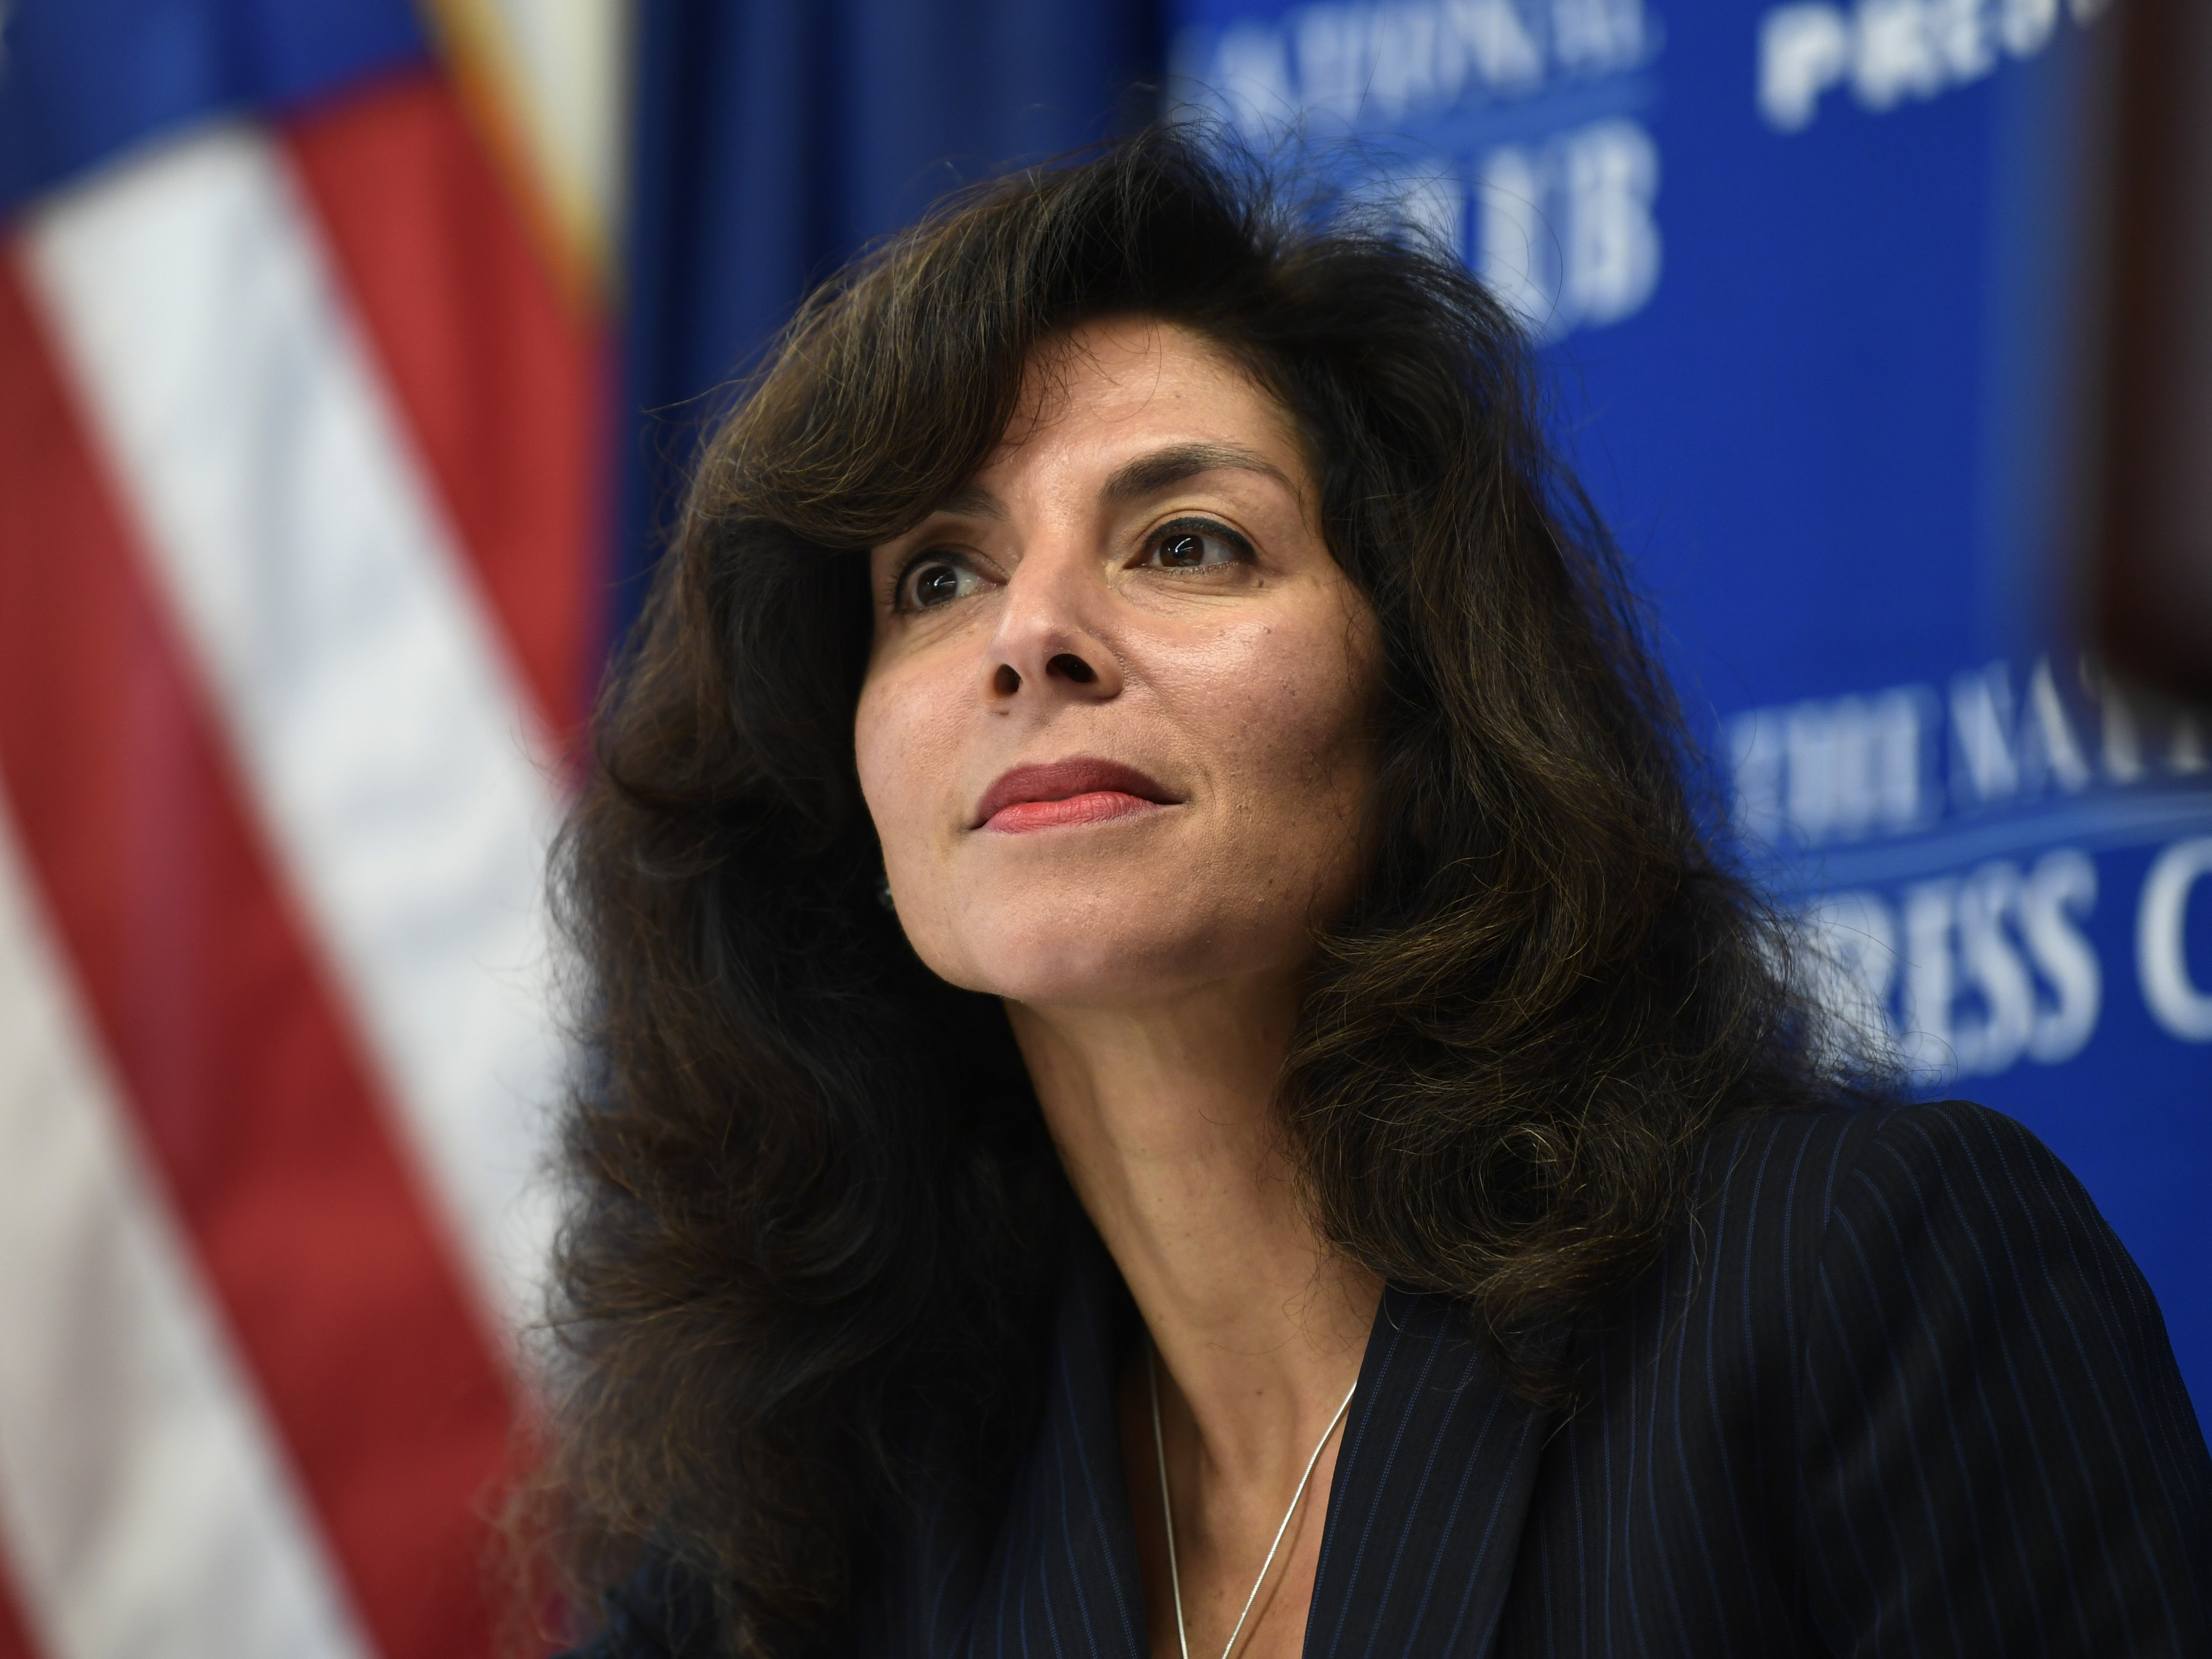 DOJ Increases Power Of Agency Running Immigration Court System